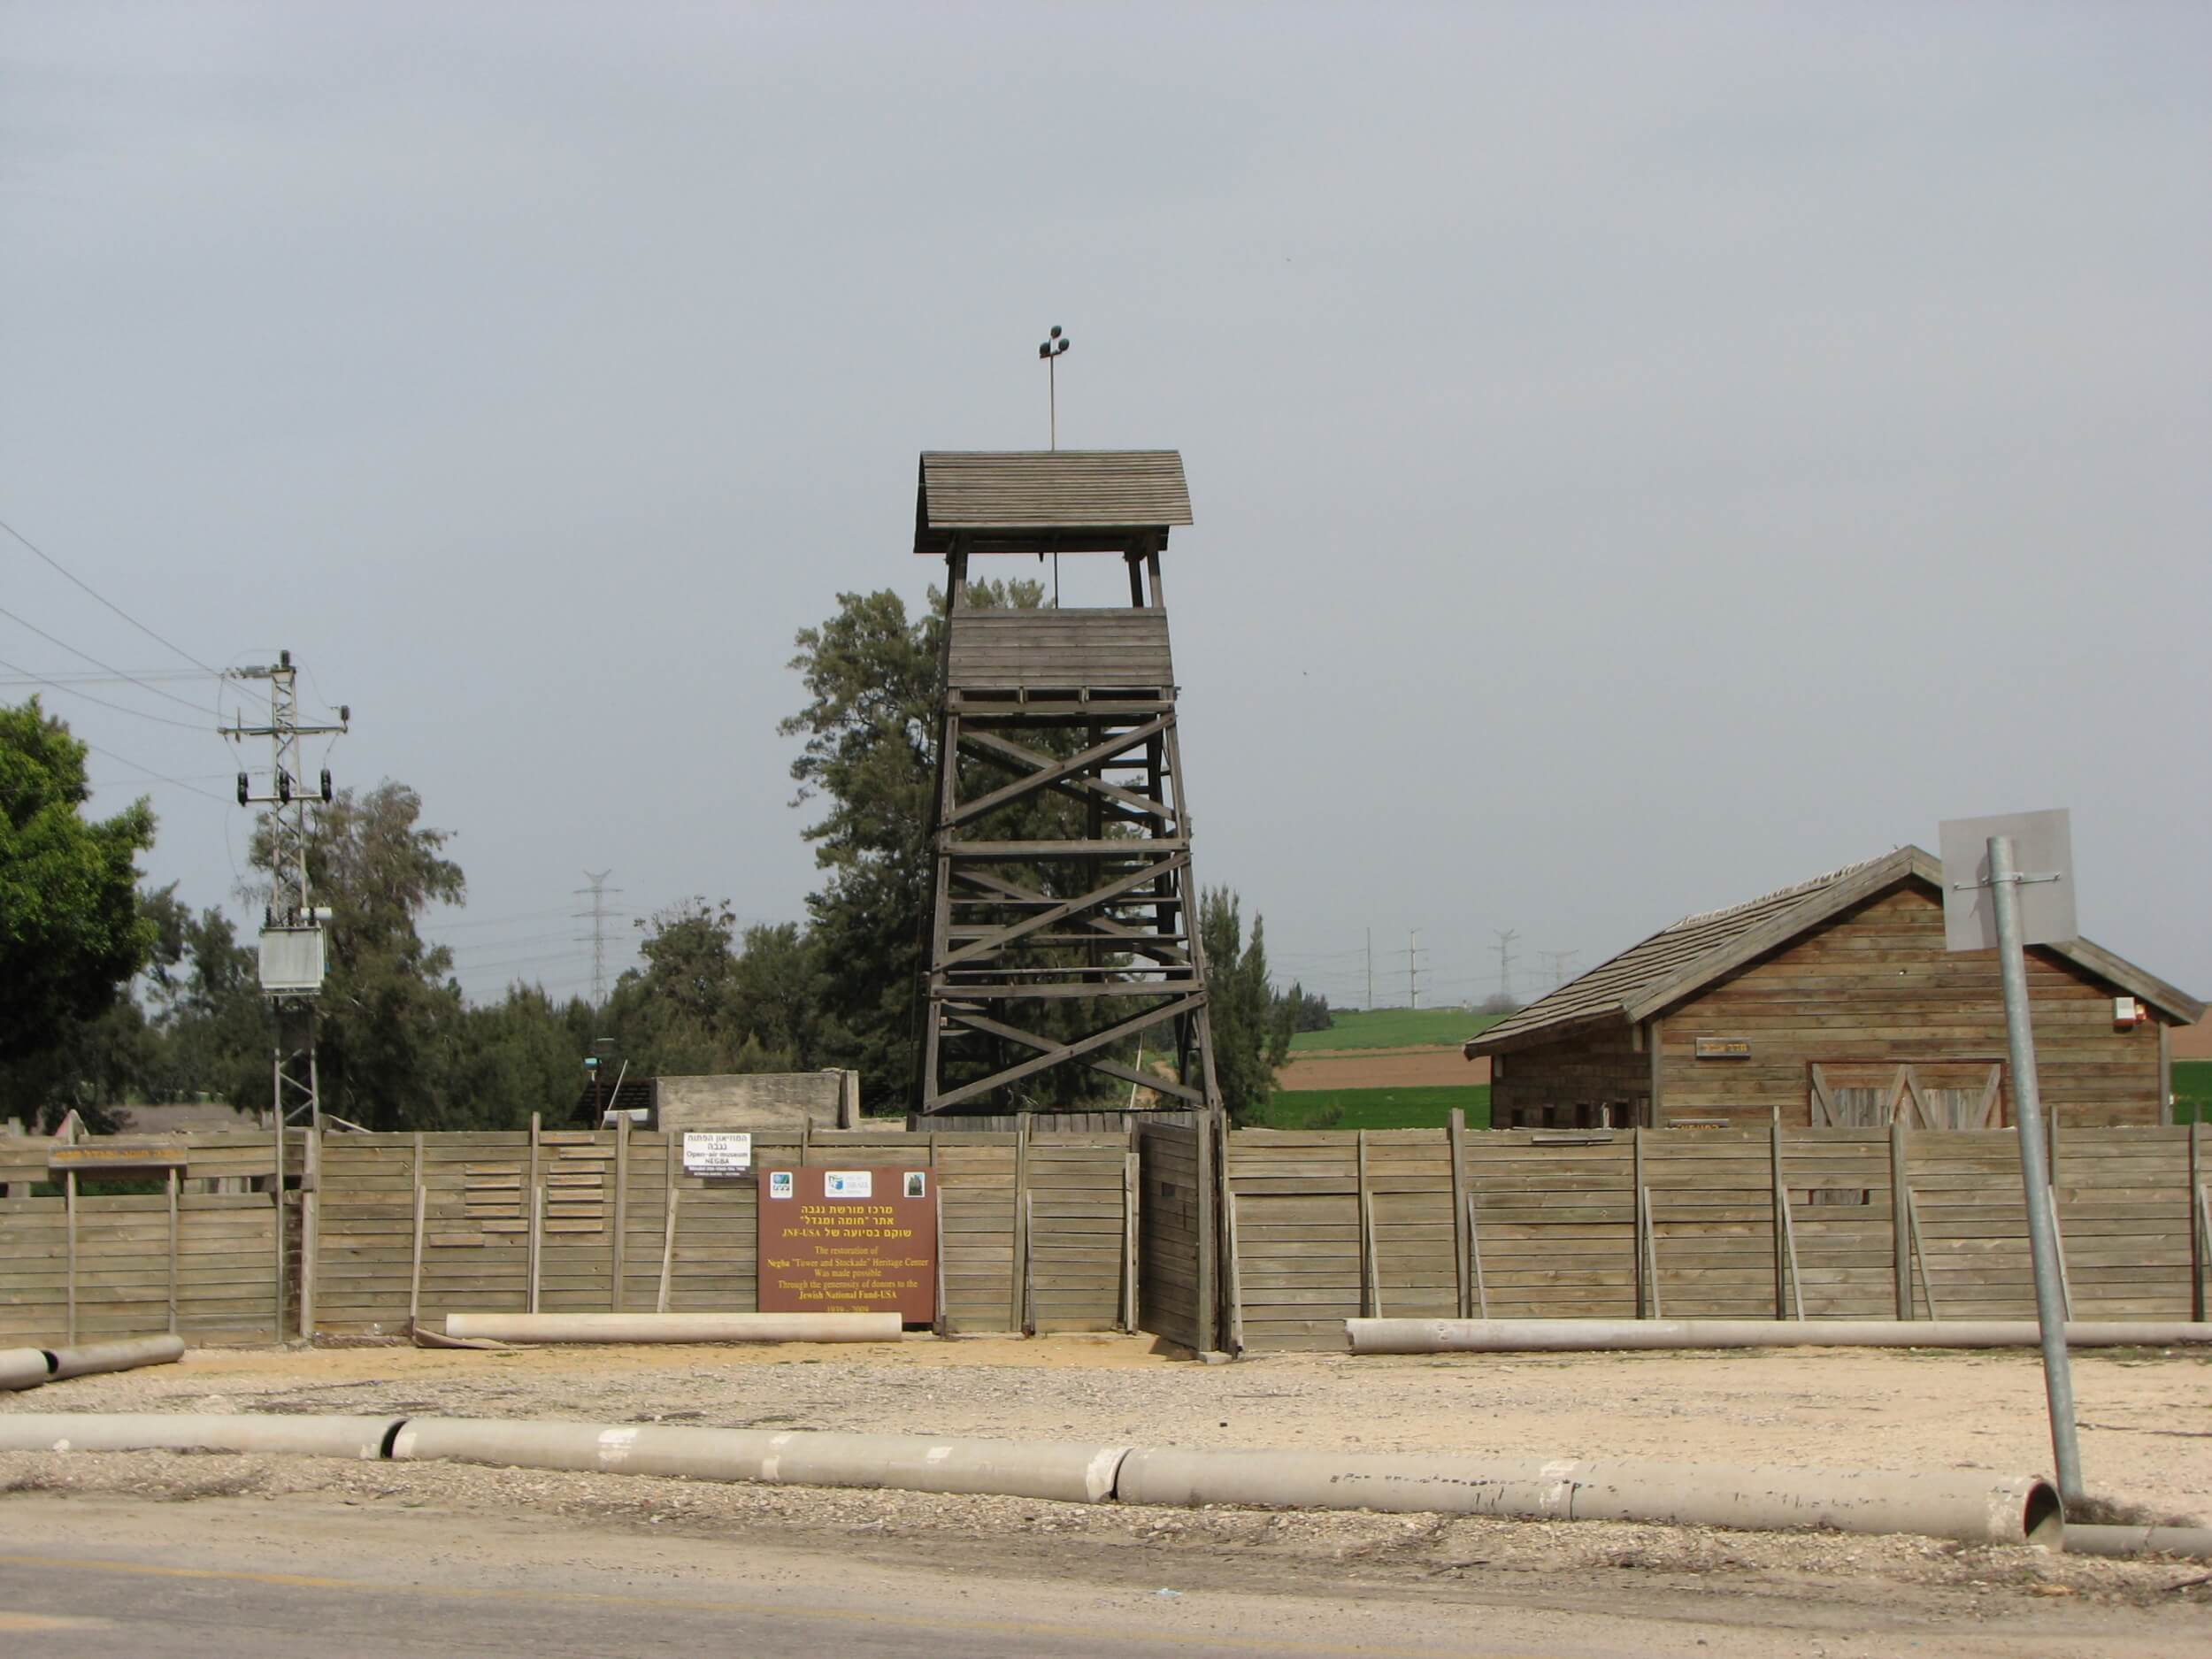 Tower and stockade at Kibbutz Negba in the Negev. Built originally in 1939, tower and stockade were restored in 2009 with help from the Jewish National Fund, USA